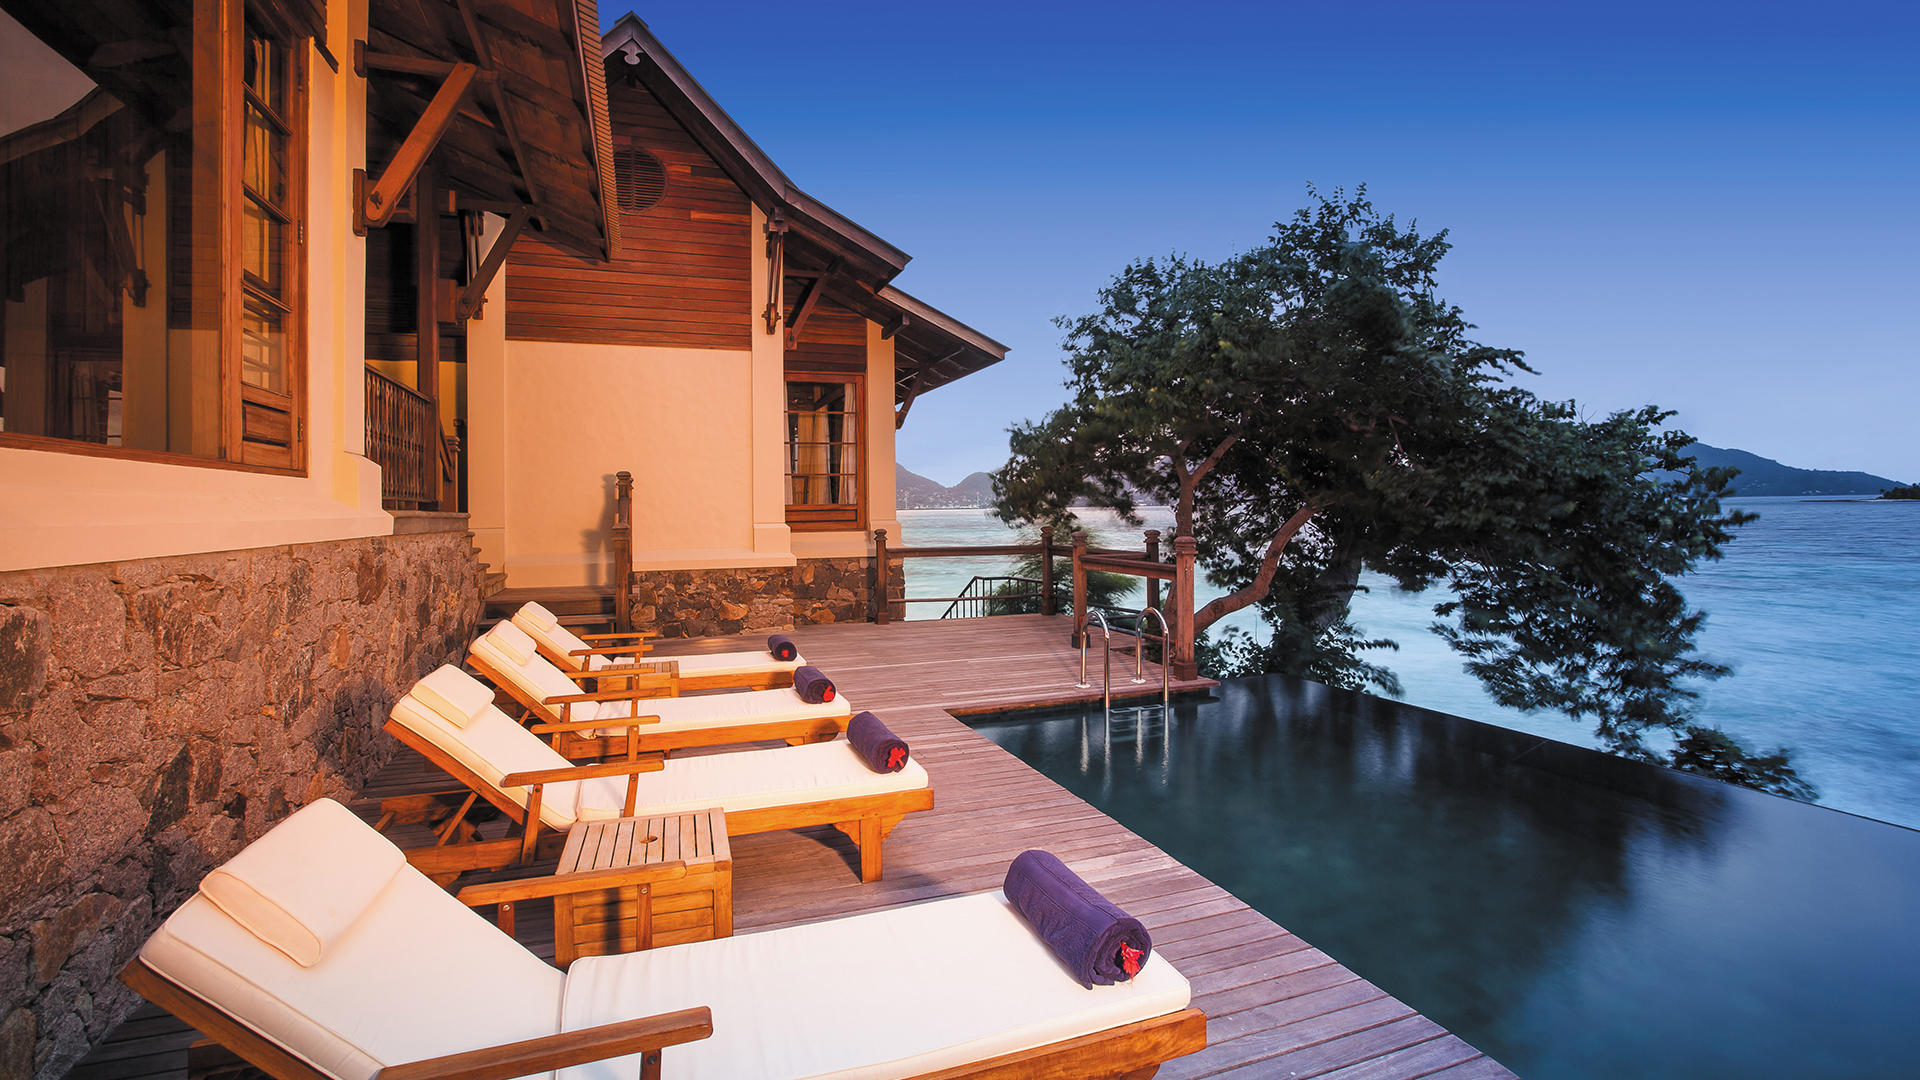 JA verzaubert der Insel Resort_Owner Signature Pool-Deck 4_Gallery